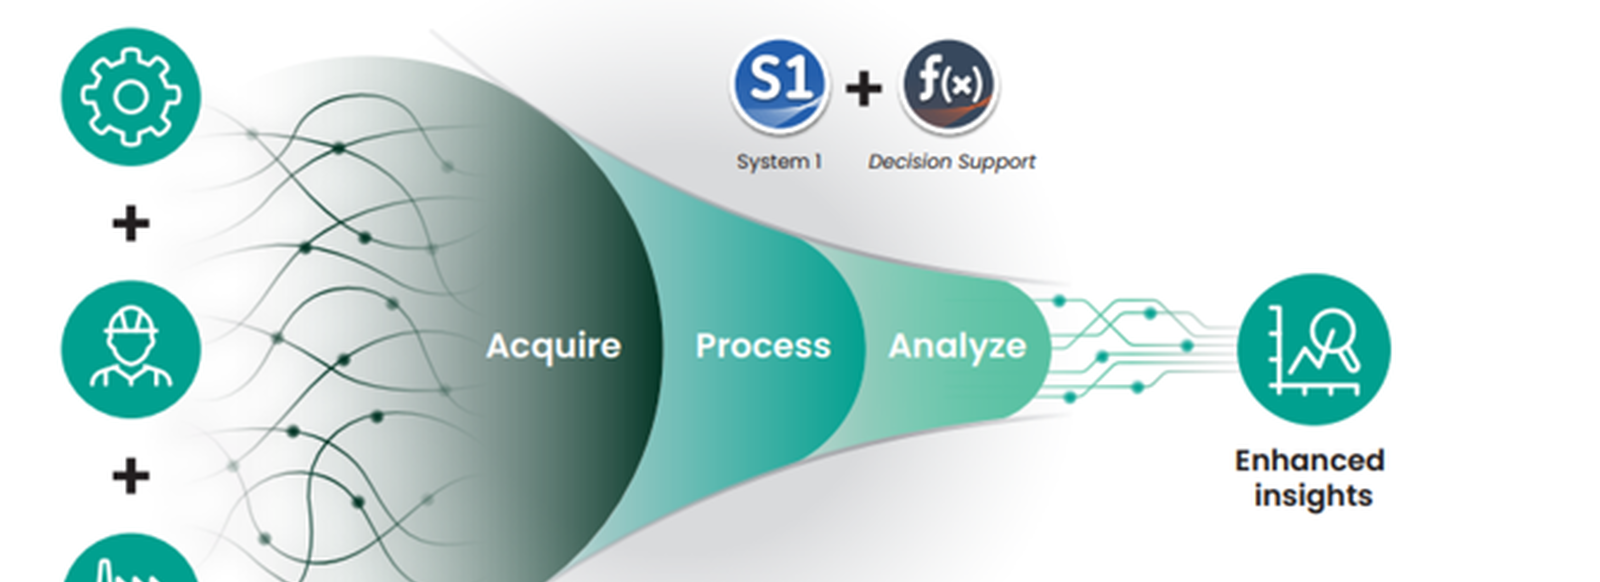 Decision Support Process Funnel